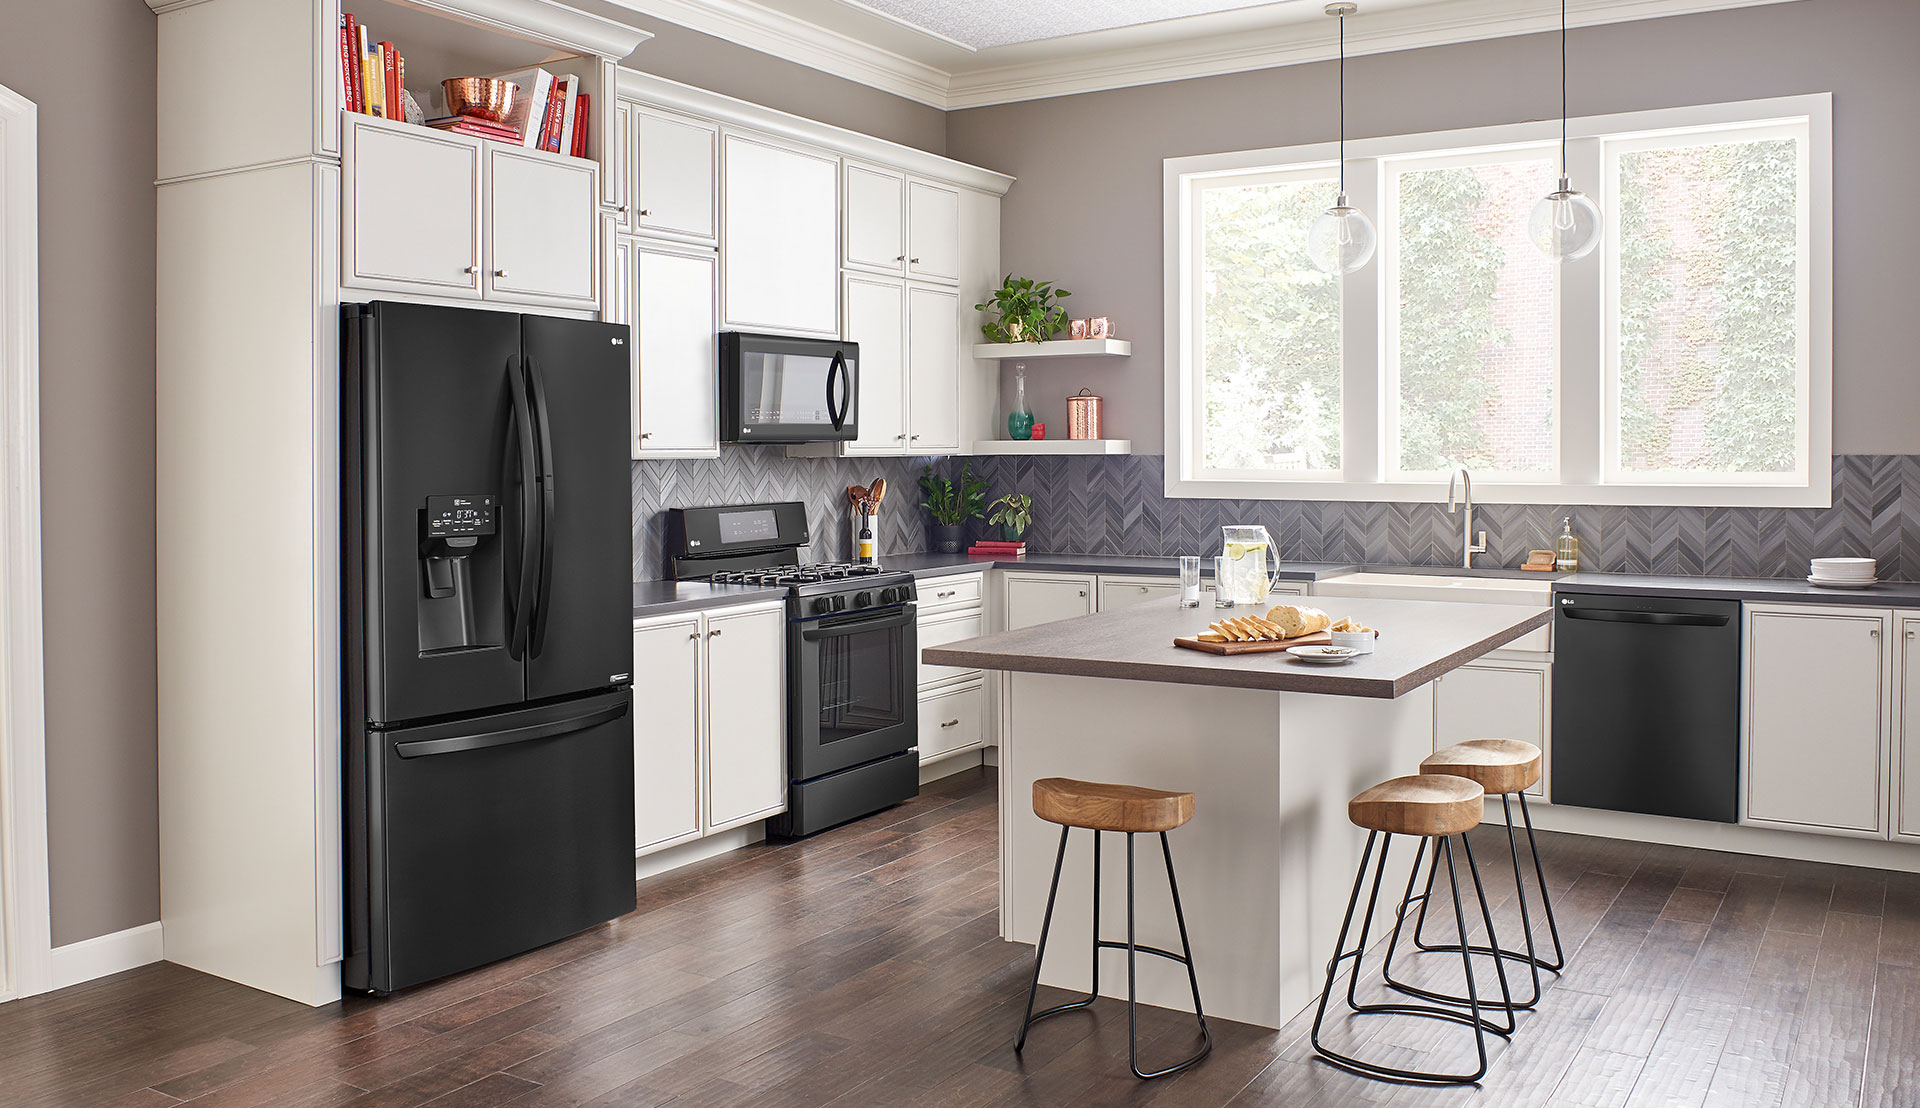 Black Kitchen Appliances Images - Trendyexaminer